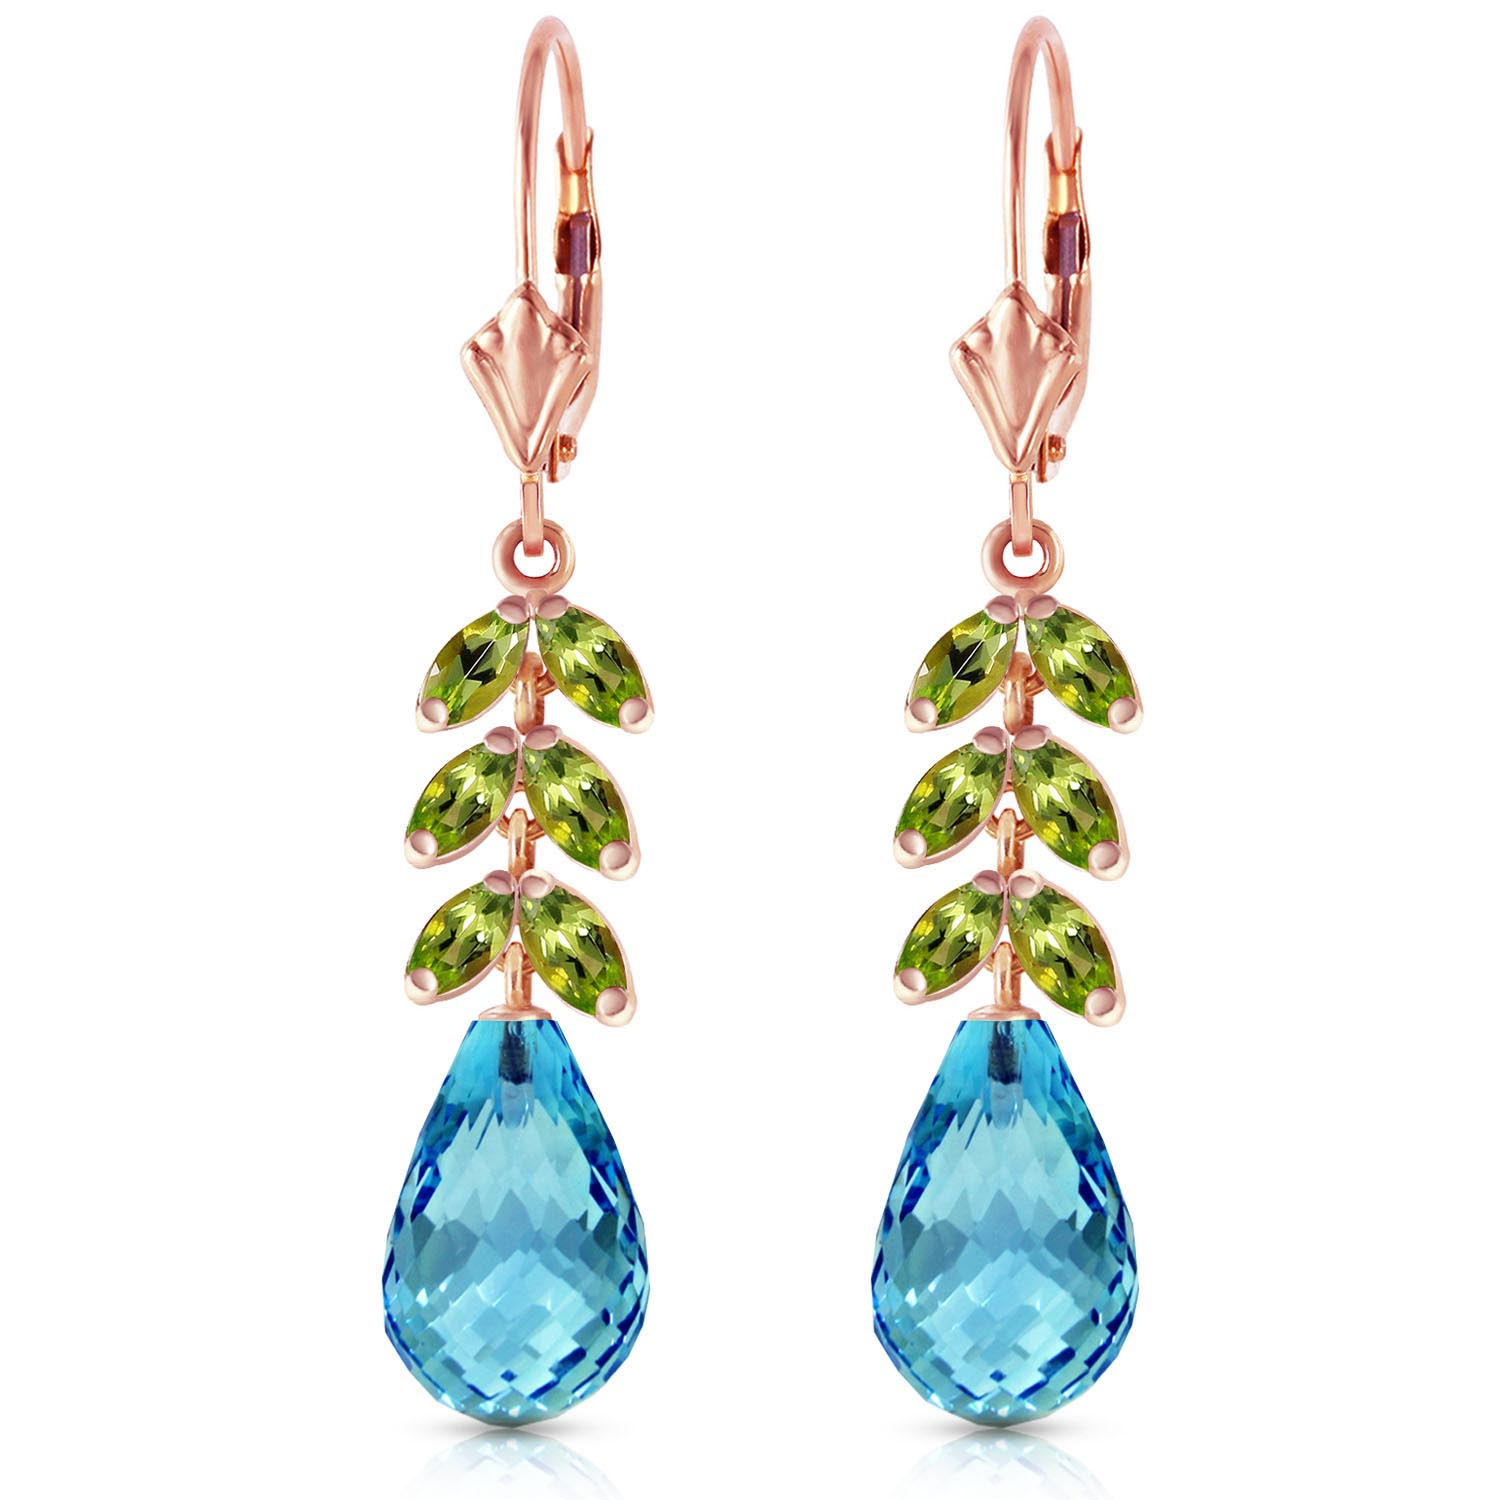 Blue Topaz and Peridot Drop Earrings 11.2ctw in 9ct Rose Gold